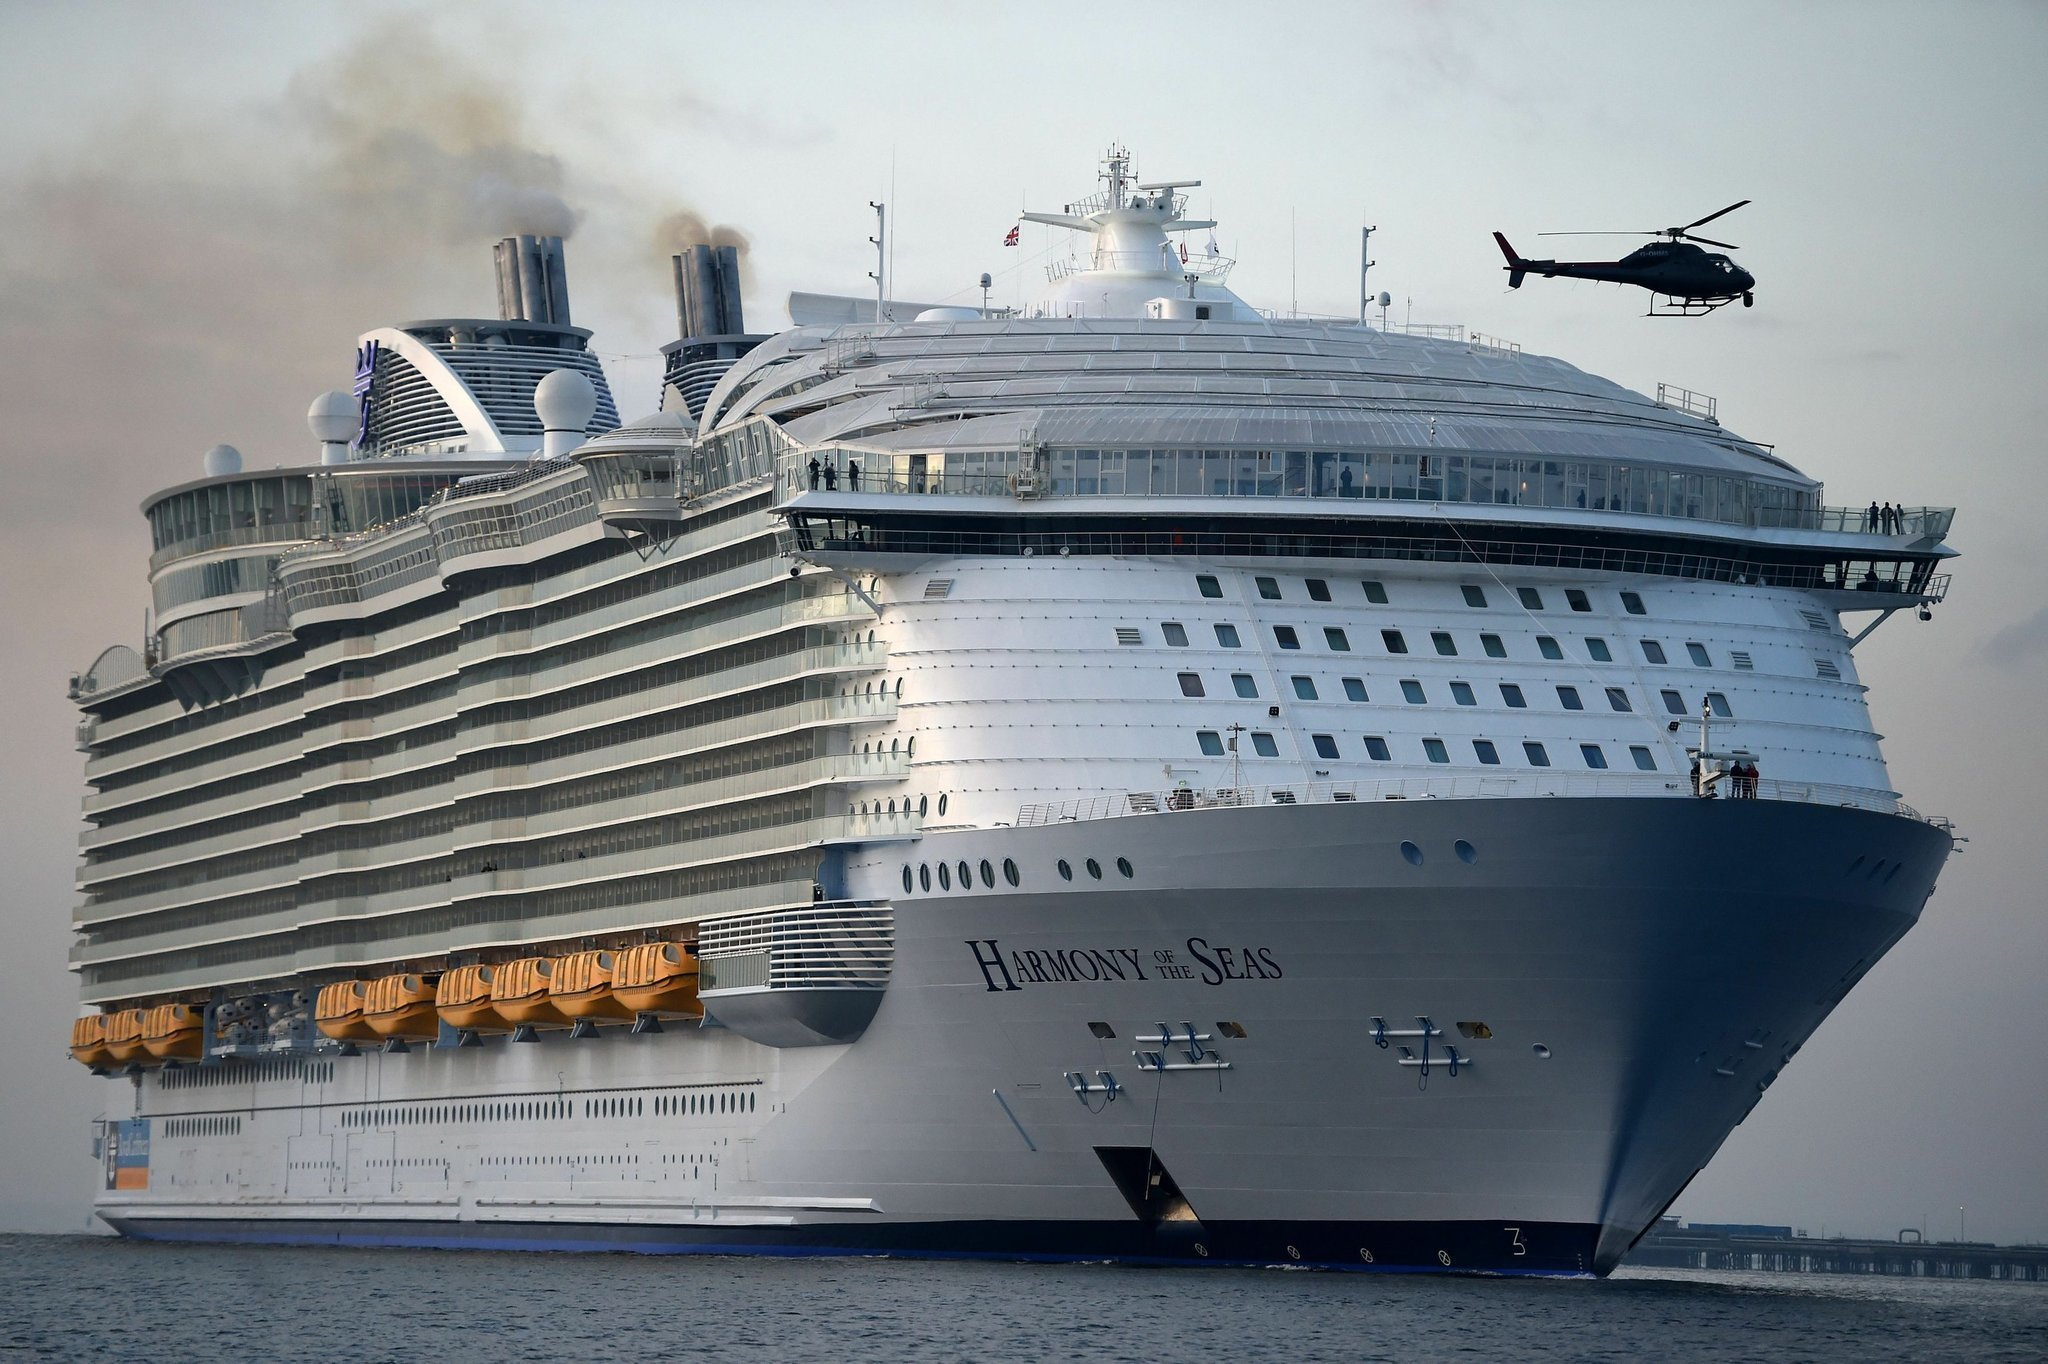 Cruise Ship Crewmember Dies In Lifeboat Drill In France The San - What happens when someone dies on a cruise ship